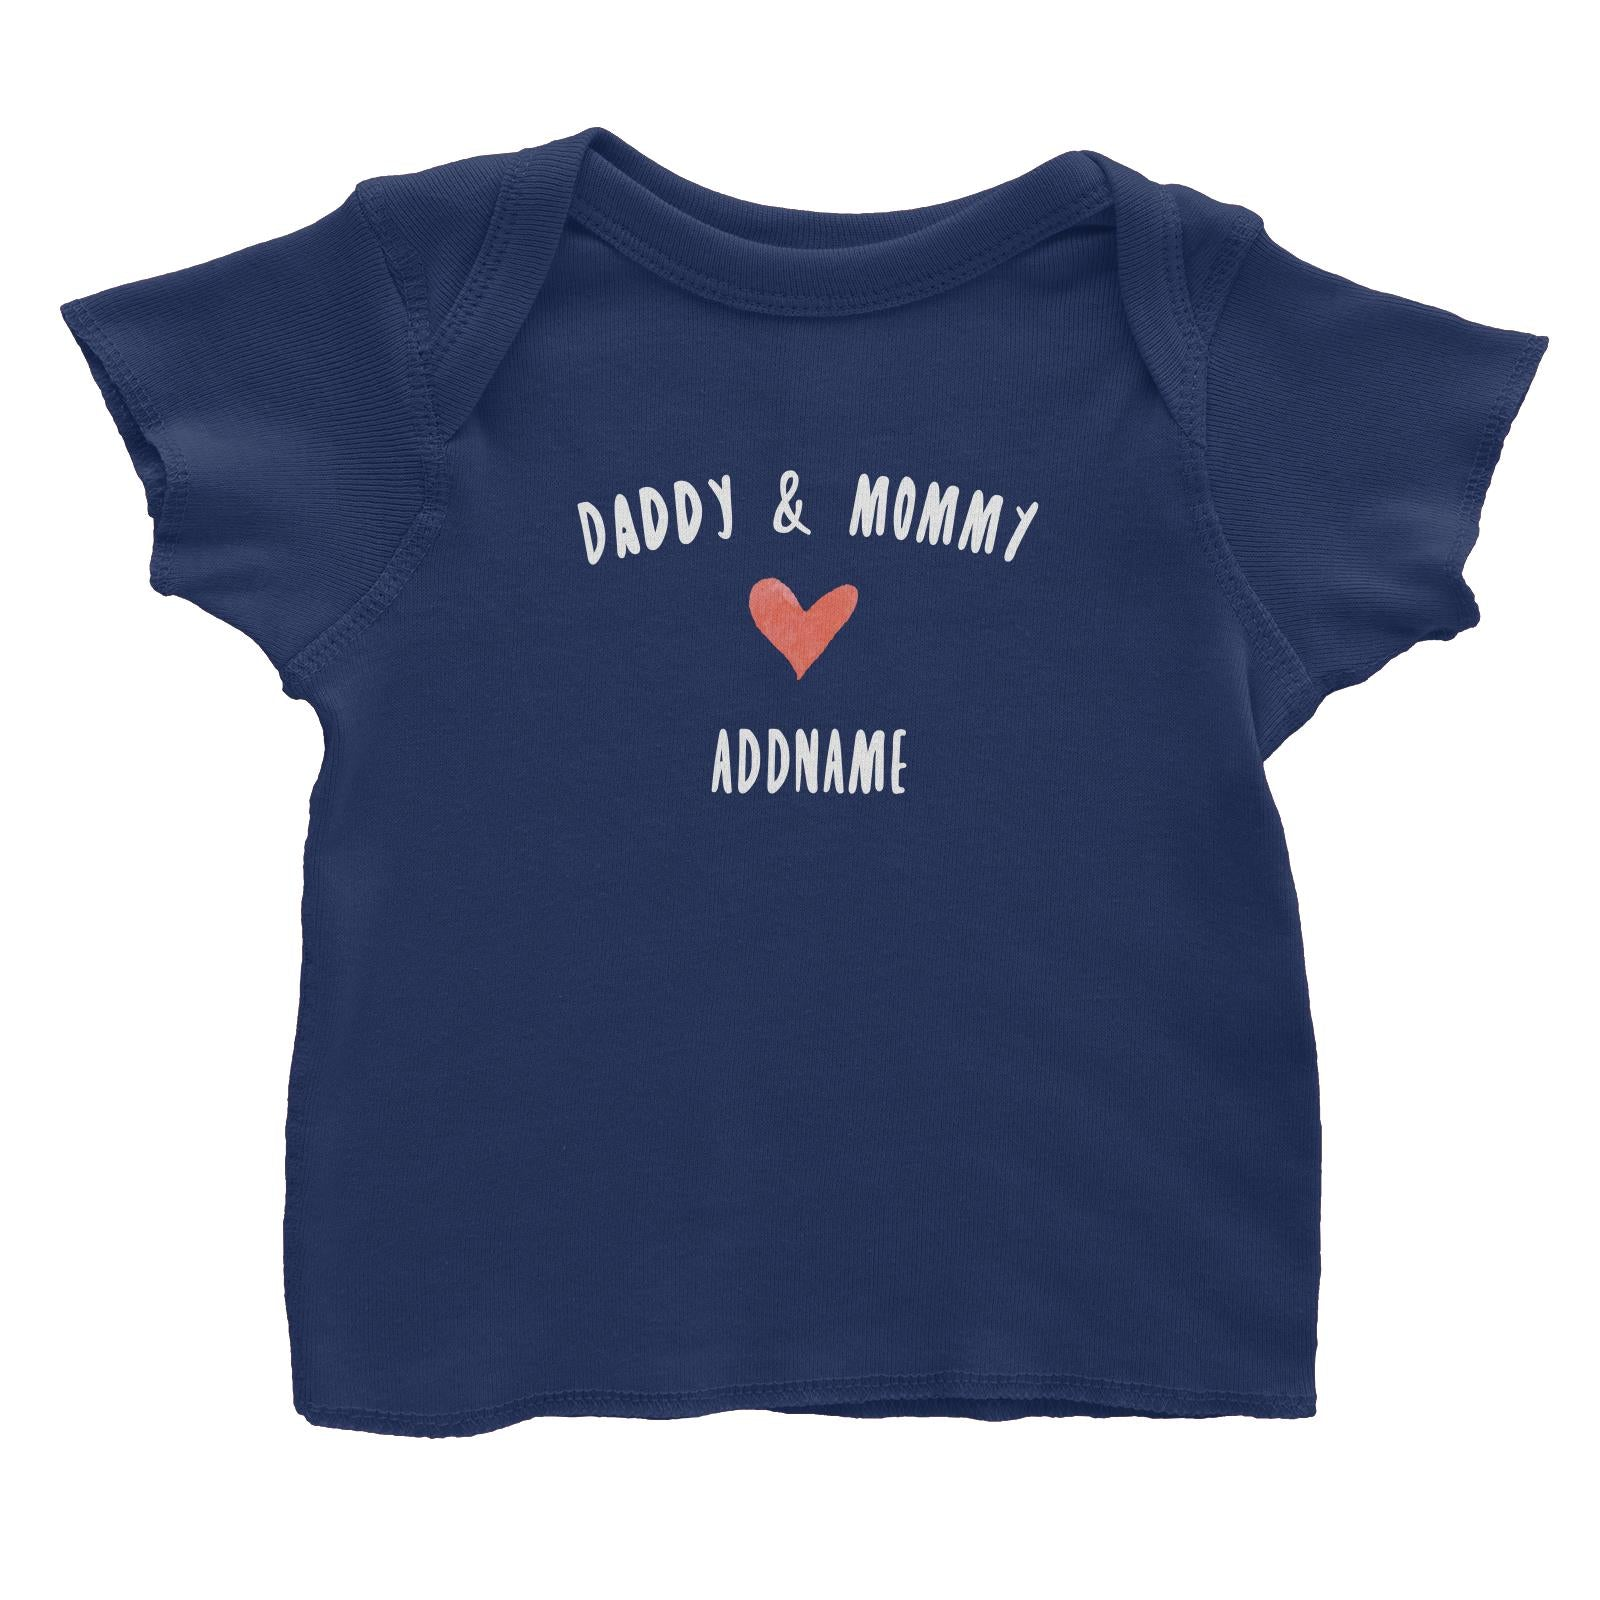 Daddy & Mommy Love Addname Baby T-Shirt  Matching Family Personalizable Designs